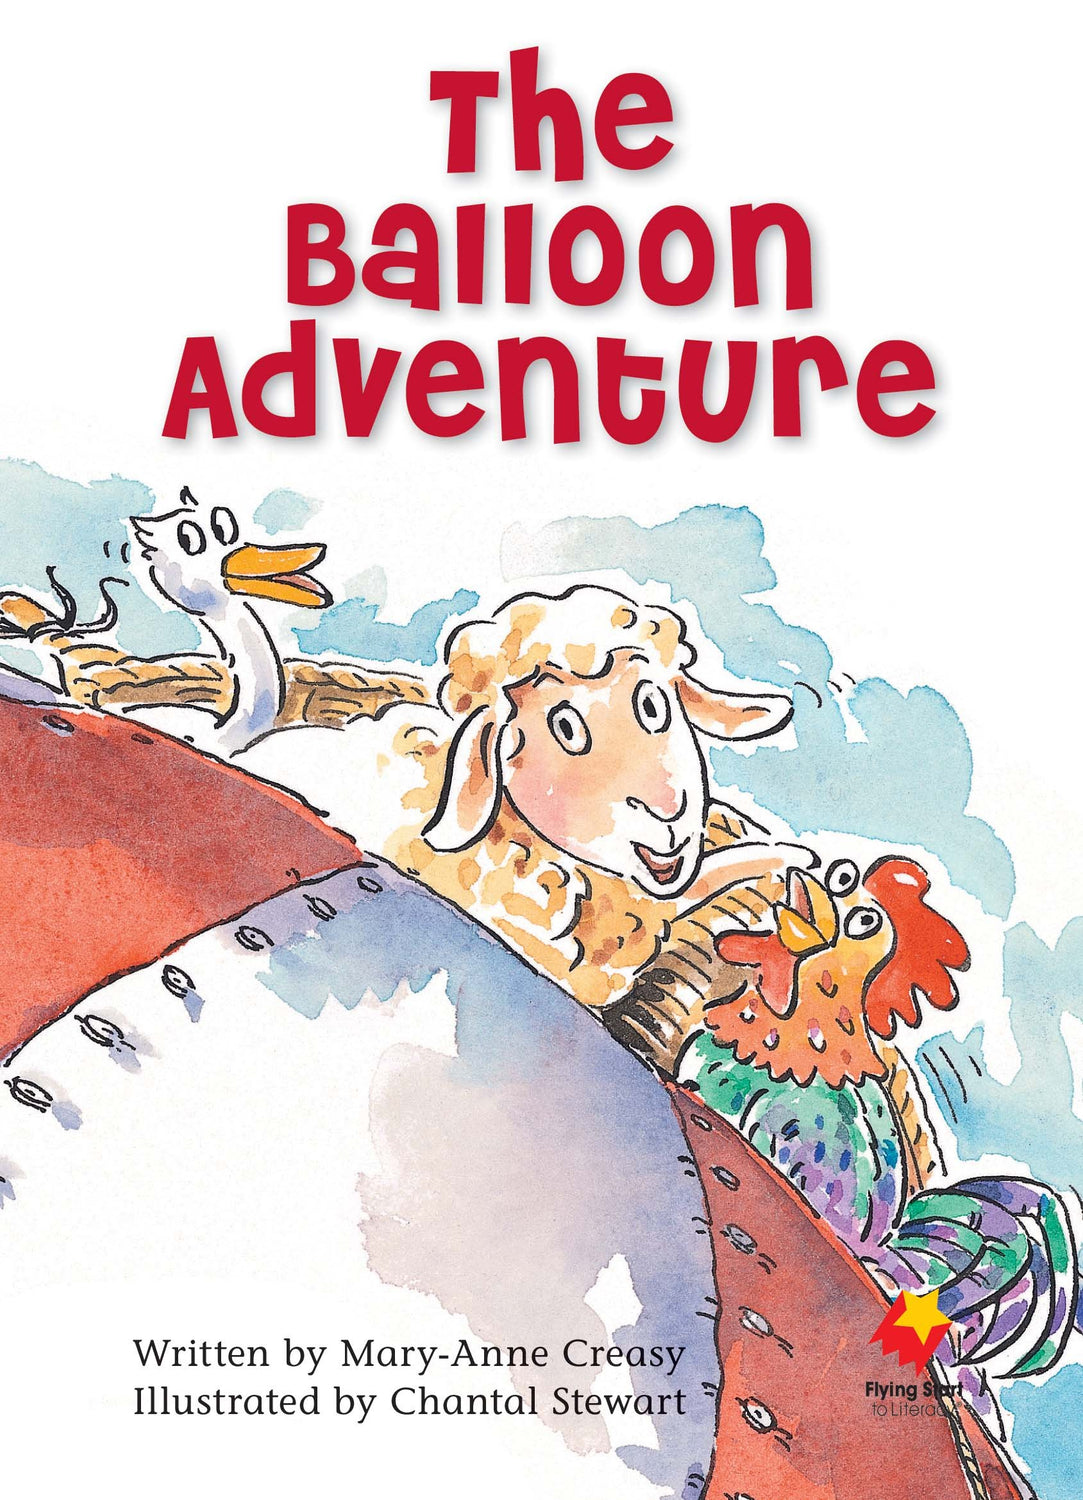 The Balloon Adventure